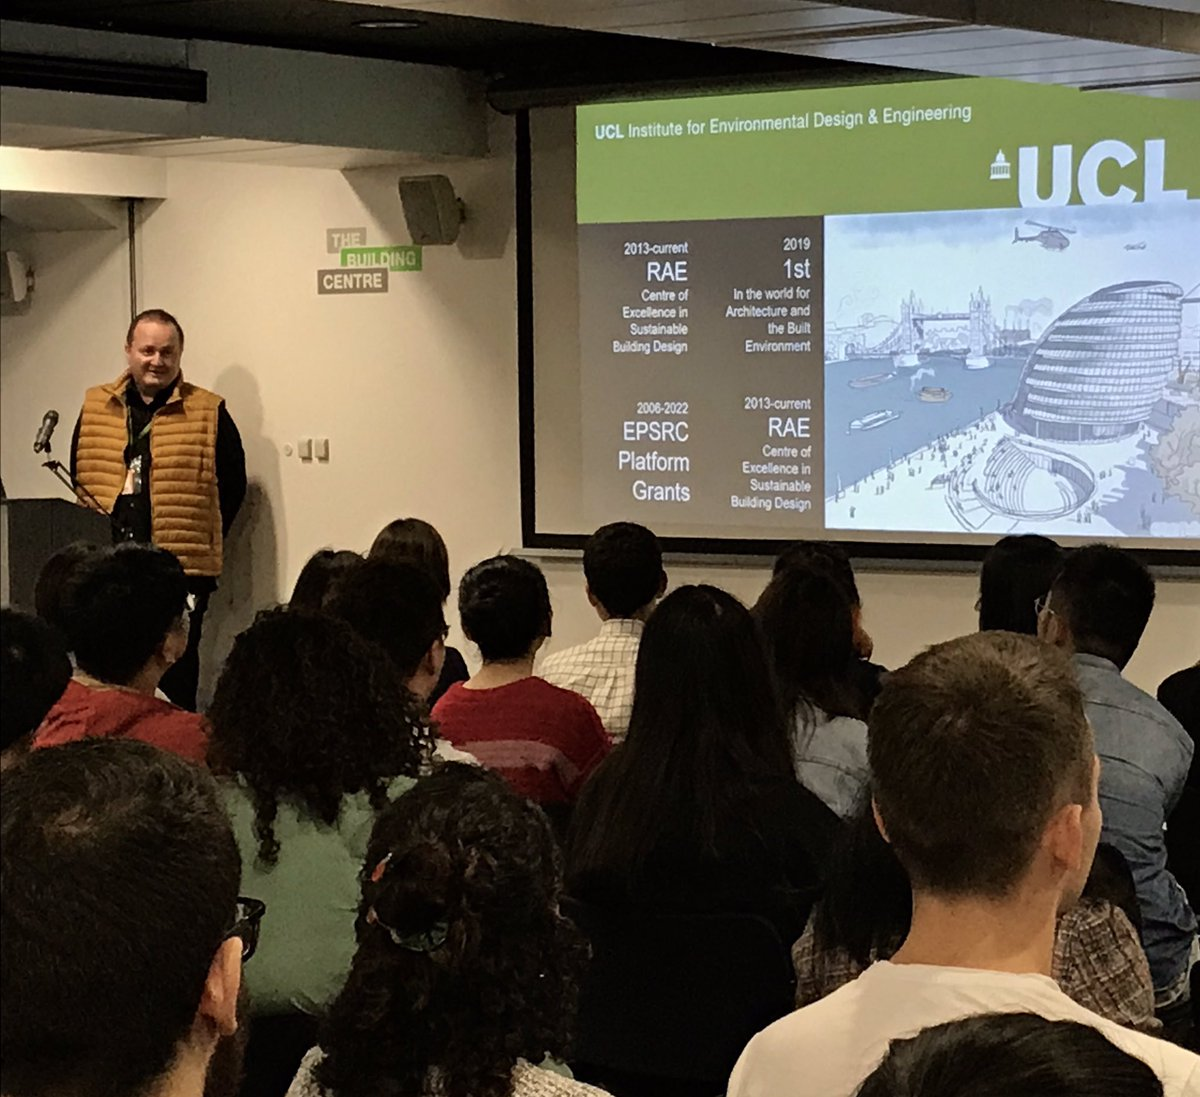 Ucl Inst For Environmental Design And Engineering On Twitter We Re Welcoming Over 130 Students To Our Four Master S Programmes This Academic Year Prof Dejan Mumovic Welcomes Them To Ucl Iede And Bartlettucl